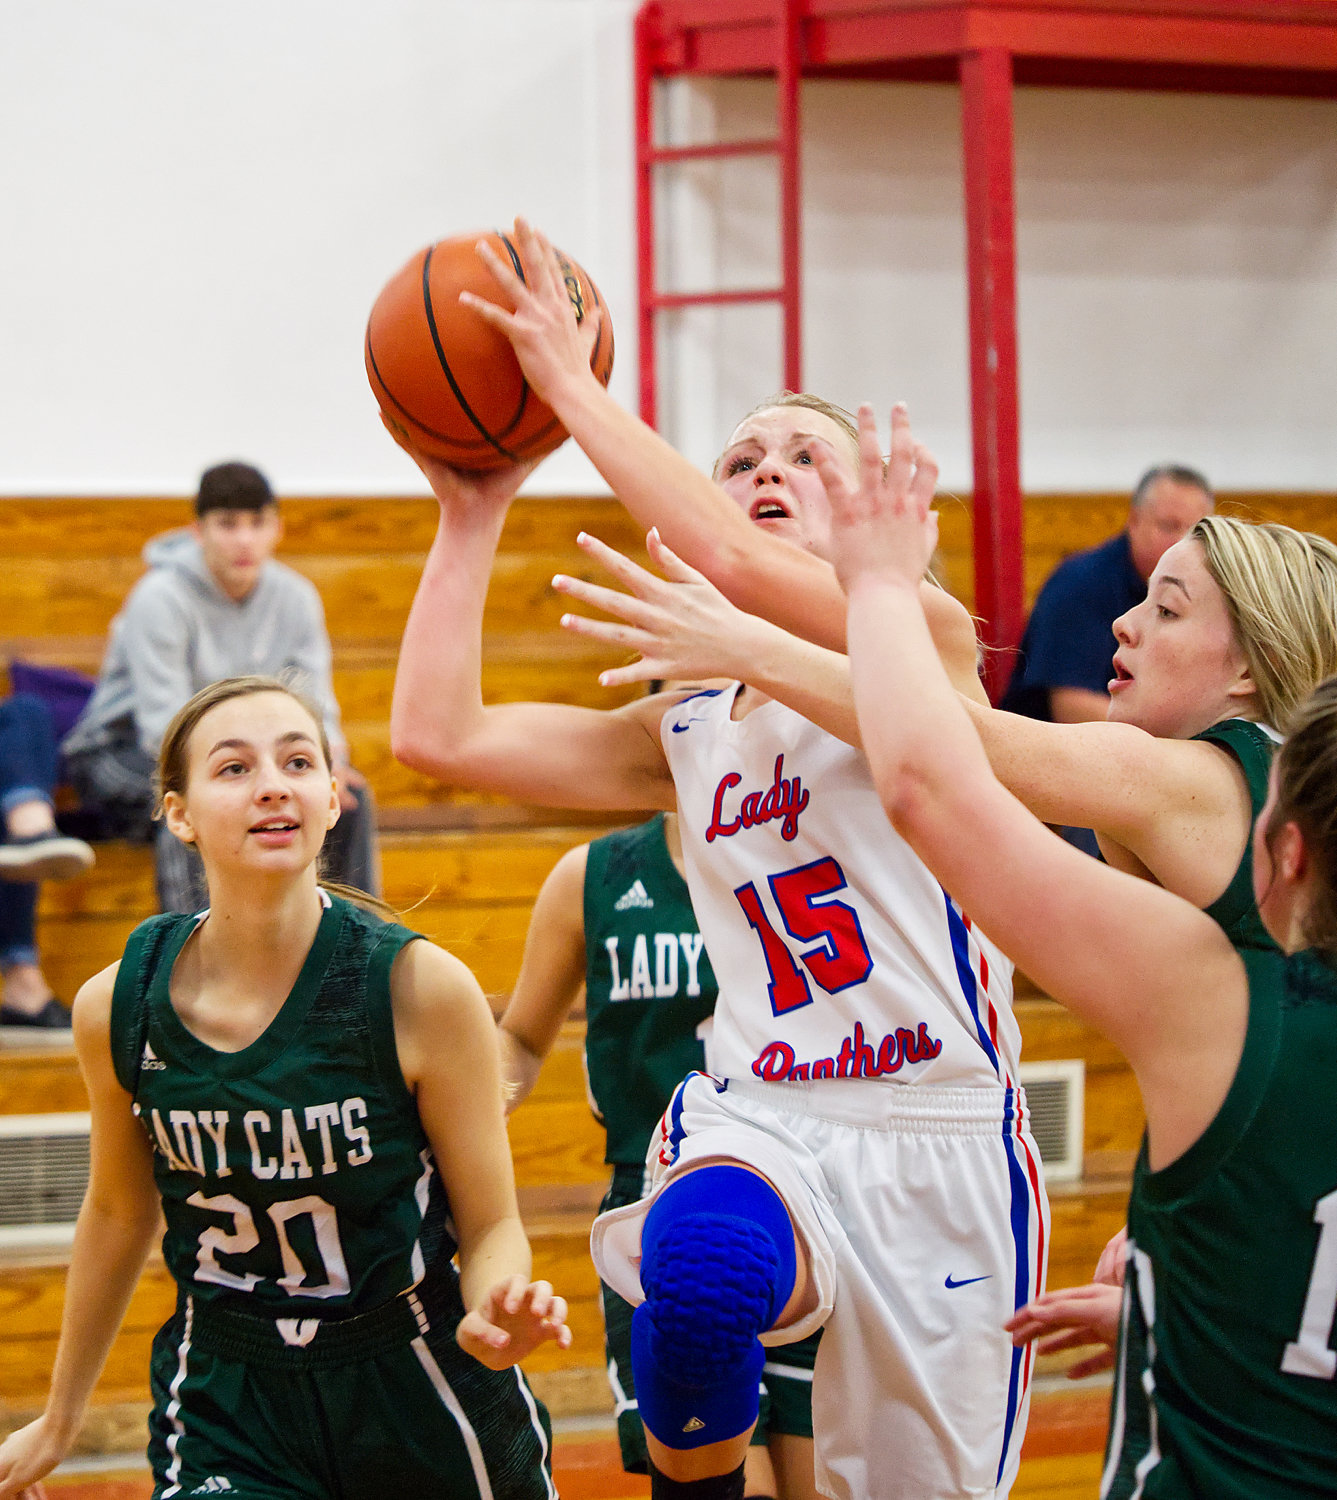 Bella Crawford (15) drives to the basket to score two of her fifteen points on the evening.